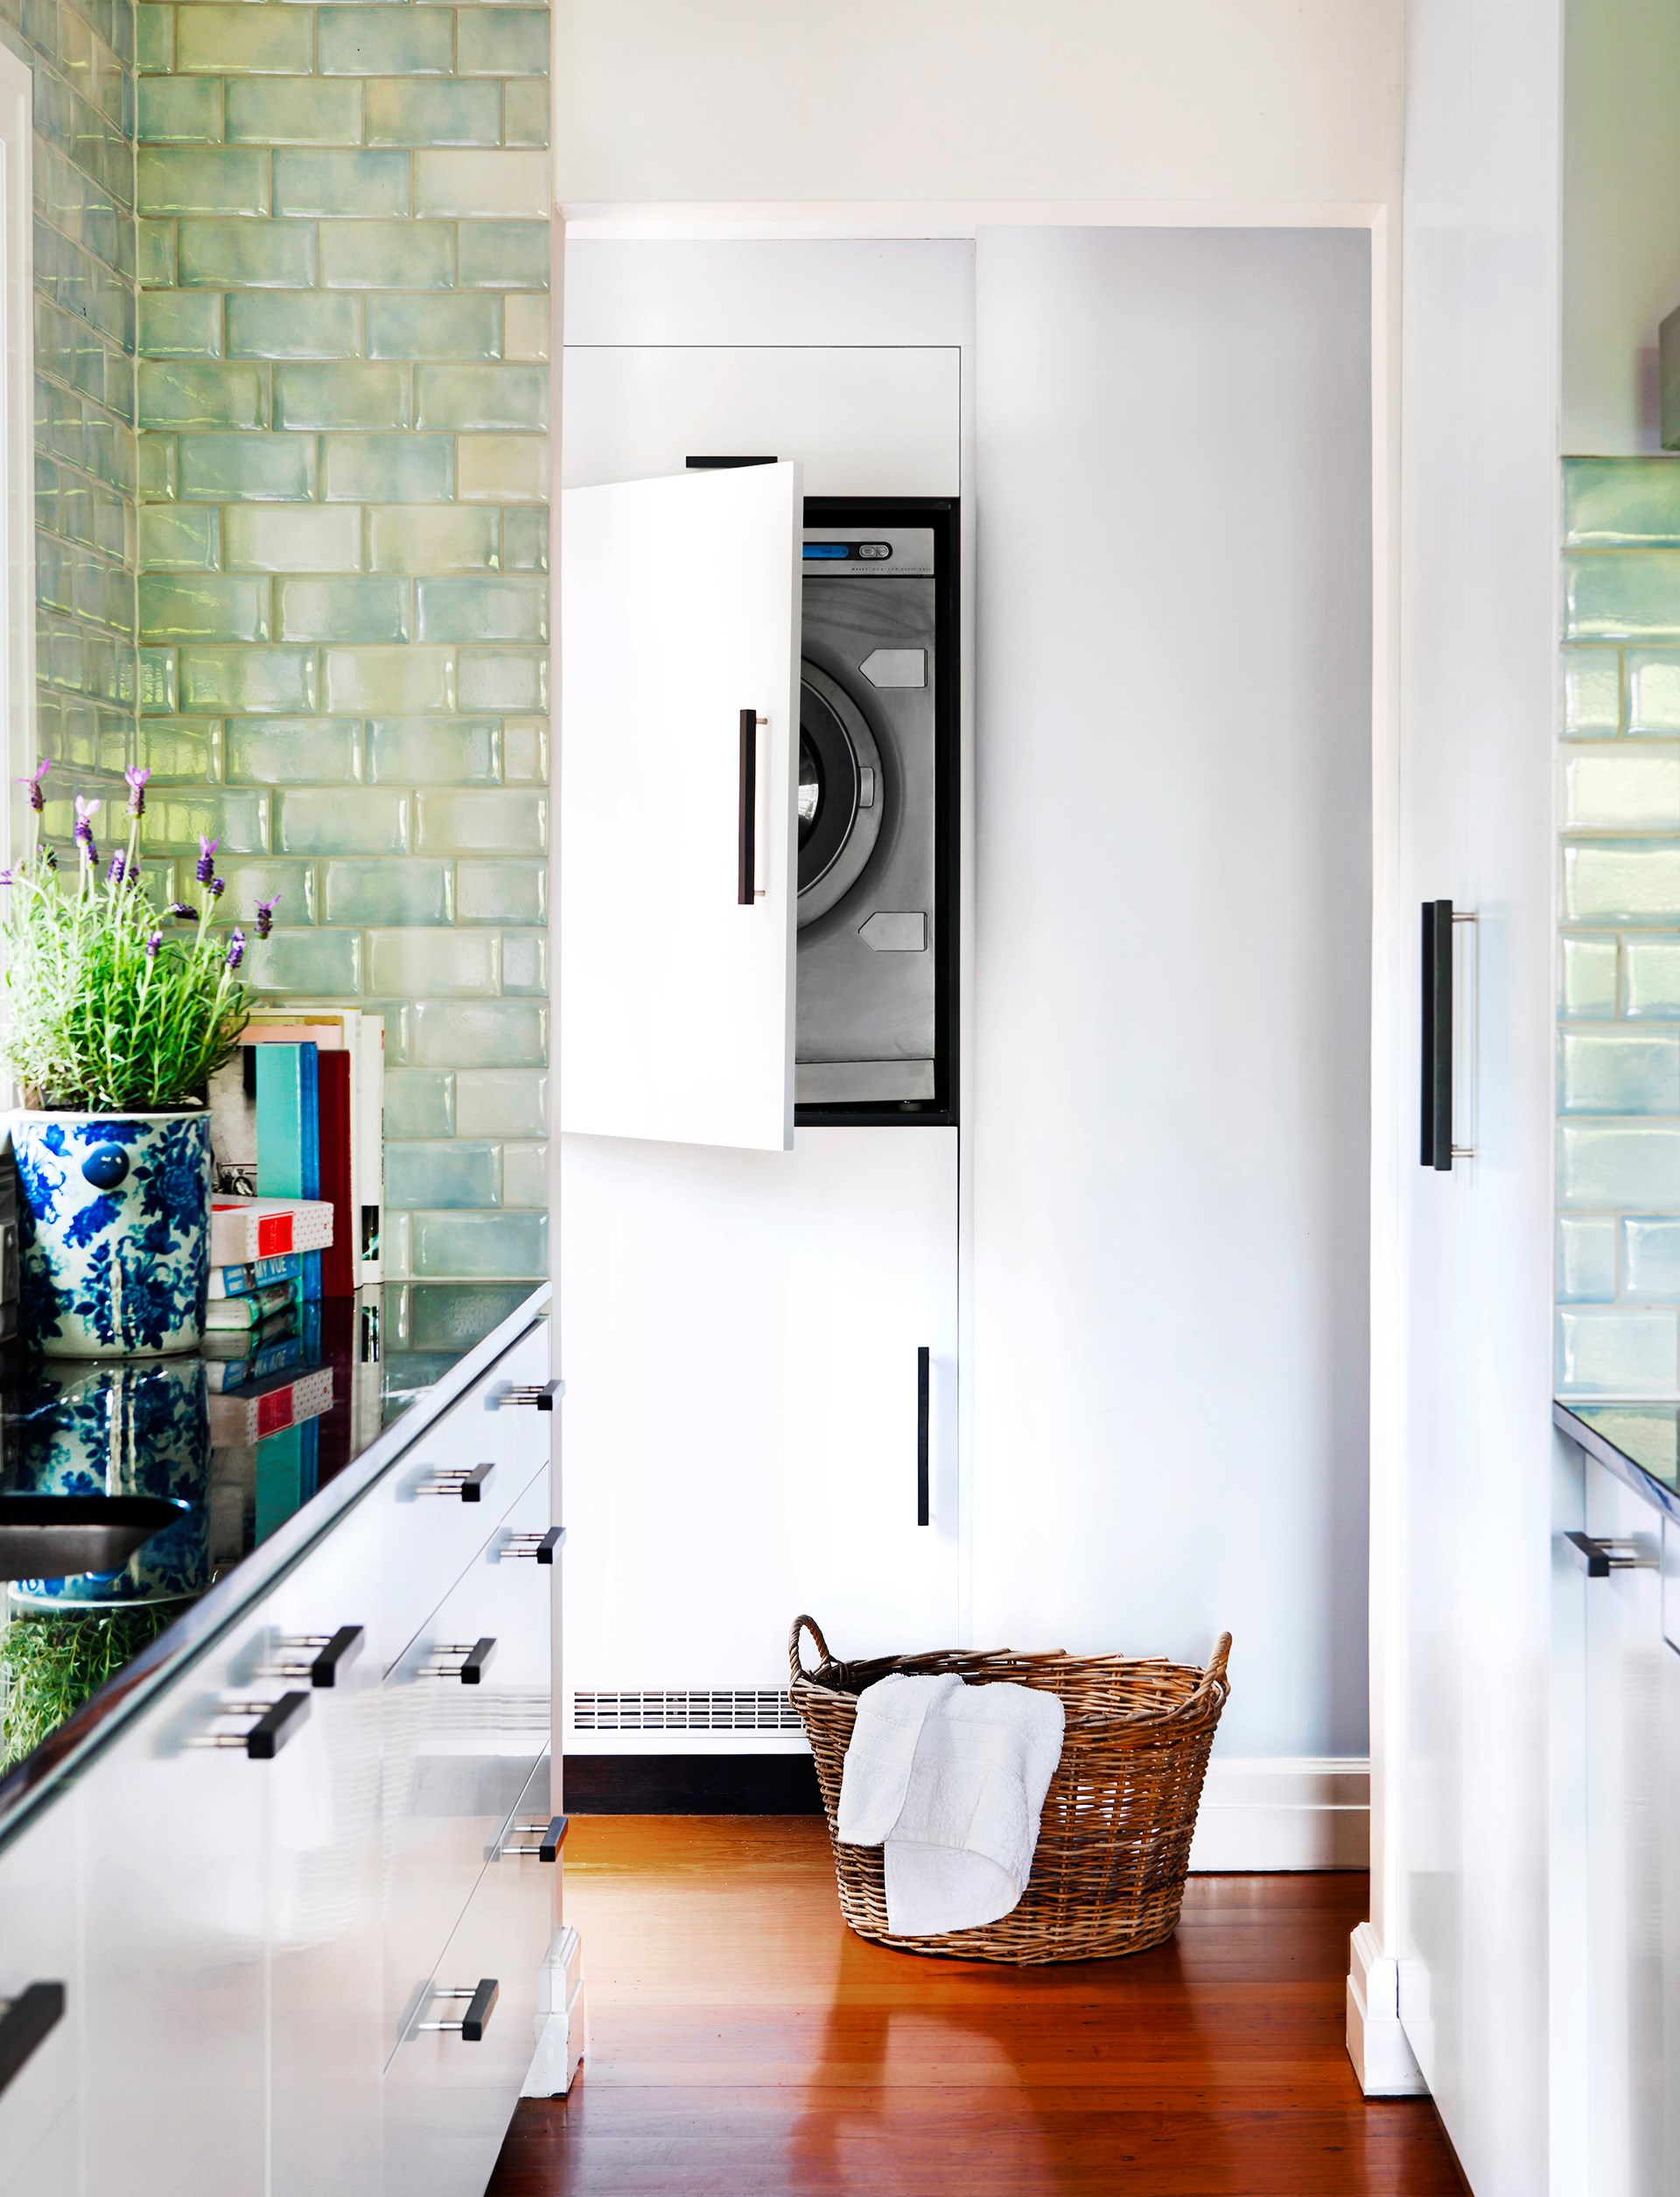 """If you are buying a new dryer, why not freshen up your laundry too. Check out our gallery of [inspiring laundries](http://www.homestolove.com.au/5-laundries-that-deserve-to-be-in-the-spotlight-1700